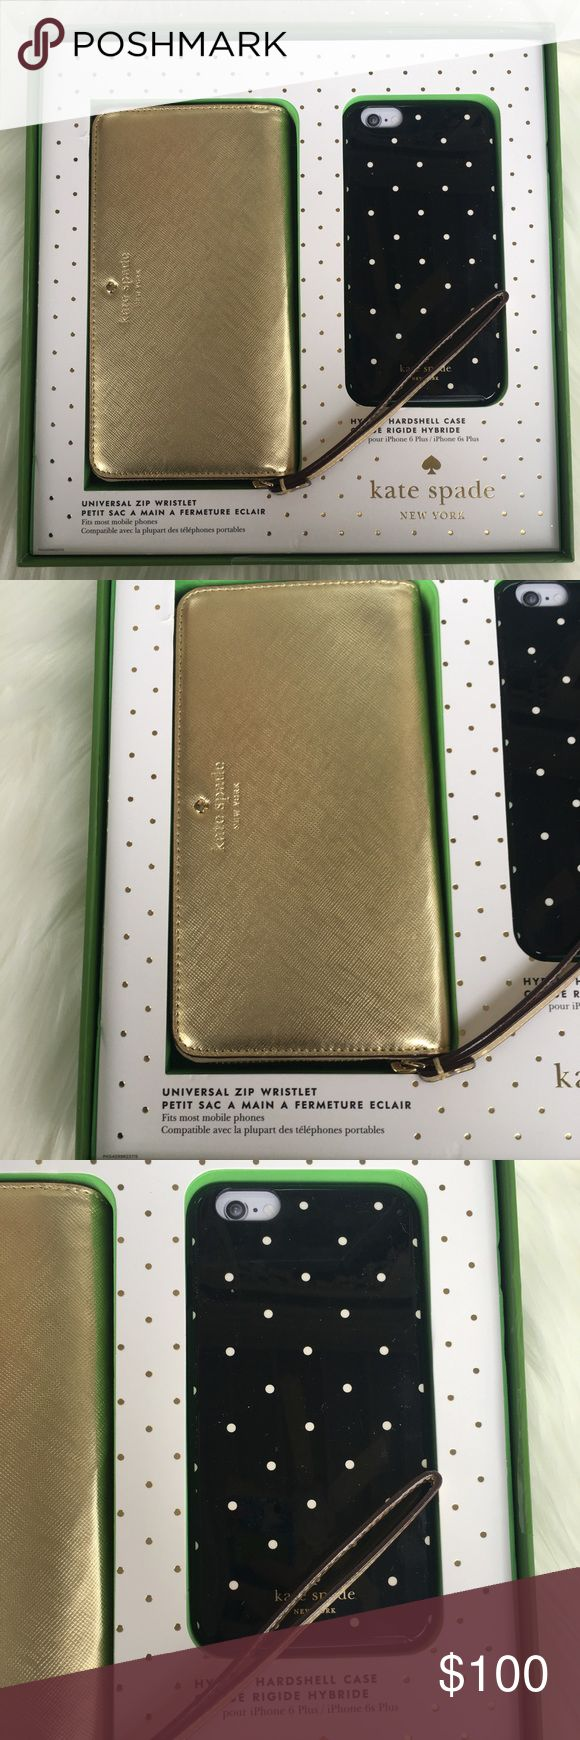 Kate Spade Zip Wristlet & 6/6s Case Gift Set Kate Spade Gift Set With Zip Wristlet & 6/6s Case. NEW IN BOX. Adorable universal zip wristlet that fits most mobile phones. Also includes a hybrid hard shell case for and iPhone 6plus or 6s plus. Great gift for anyone in your life. kate spade Bags Clutches & Wristlets